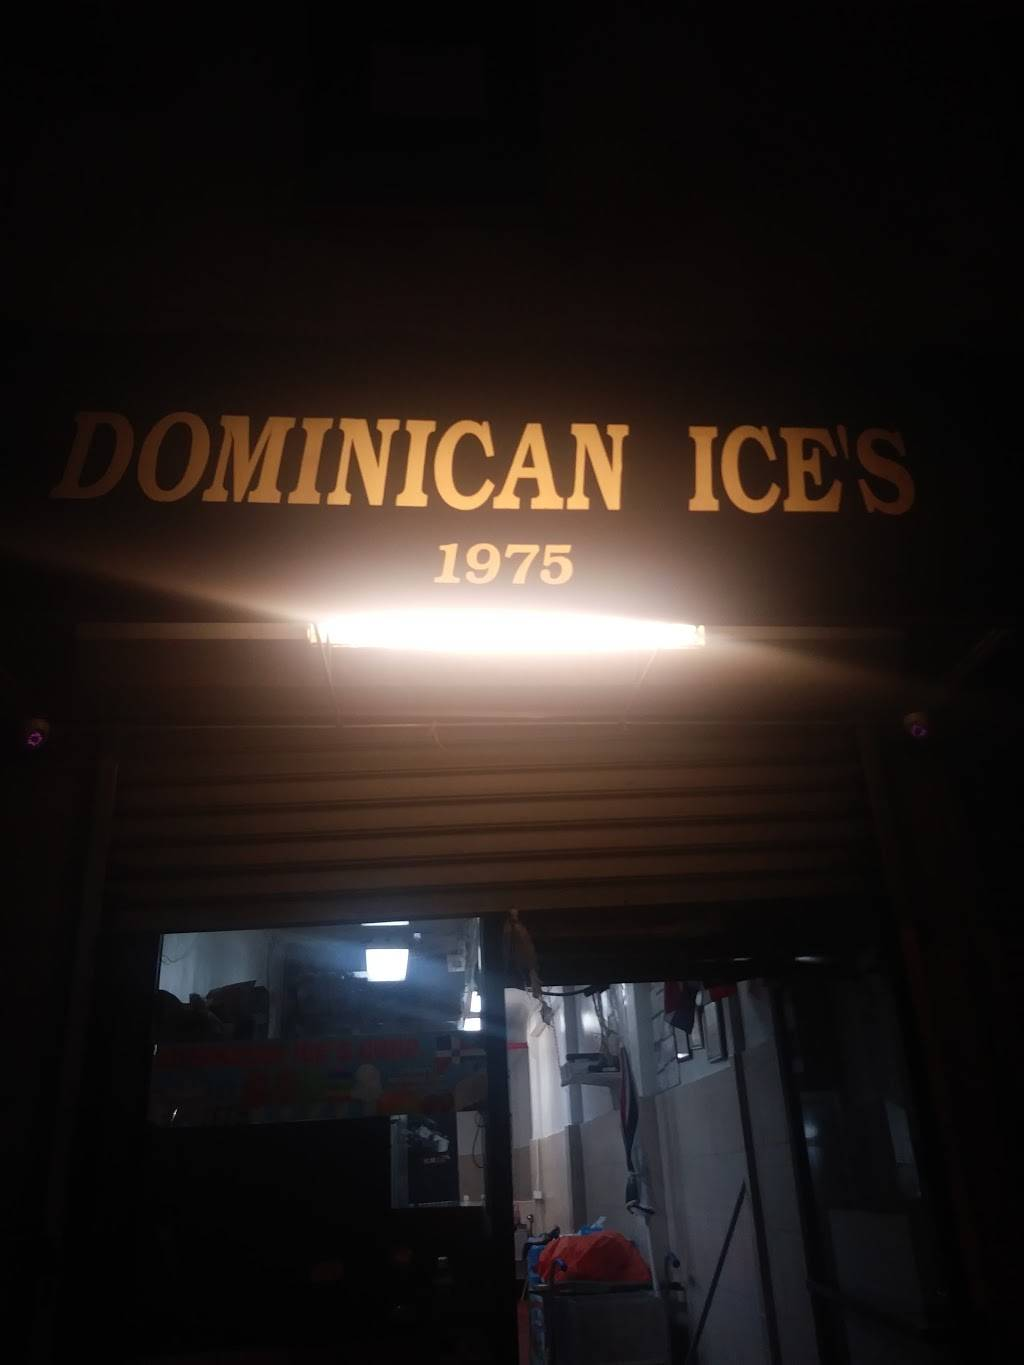 Dominican ices | restaurant | 1975 Jerome Ave, Bronx, NY 10453, USA | 9172809043 OR +1 917-280-9043